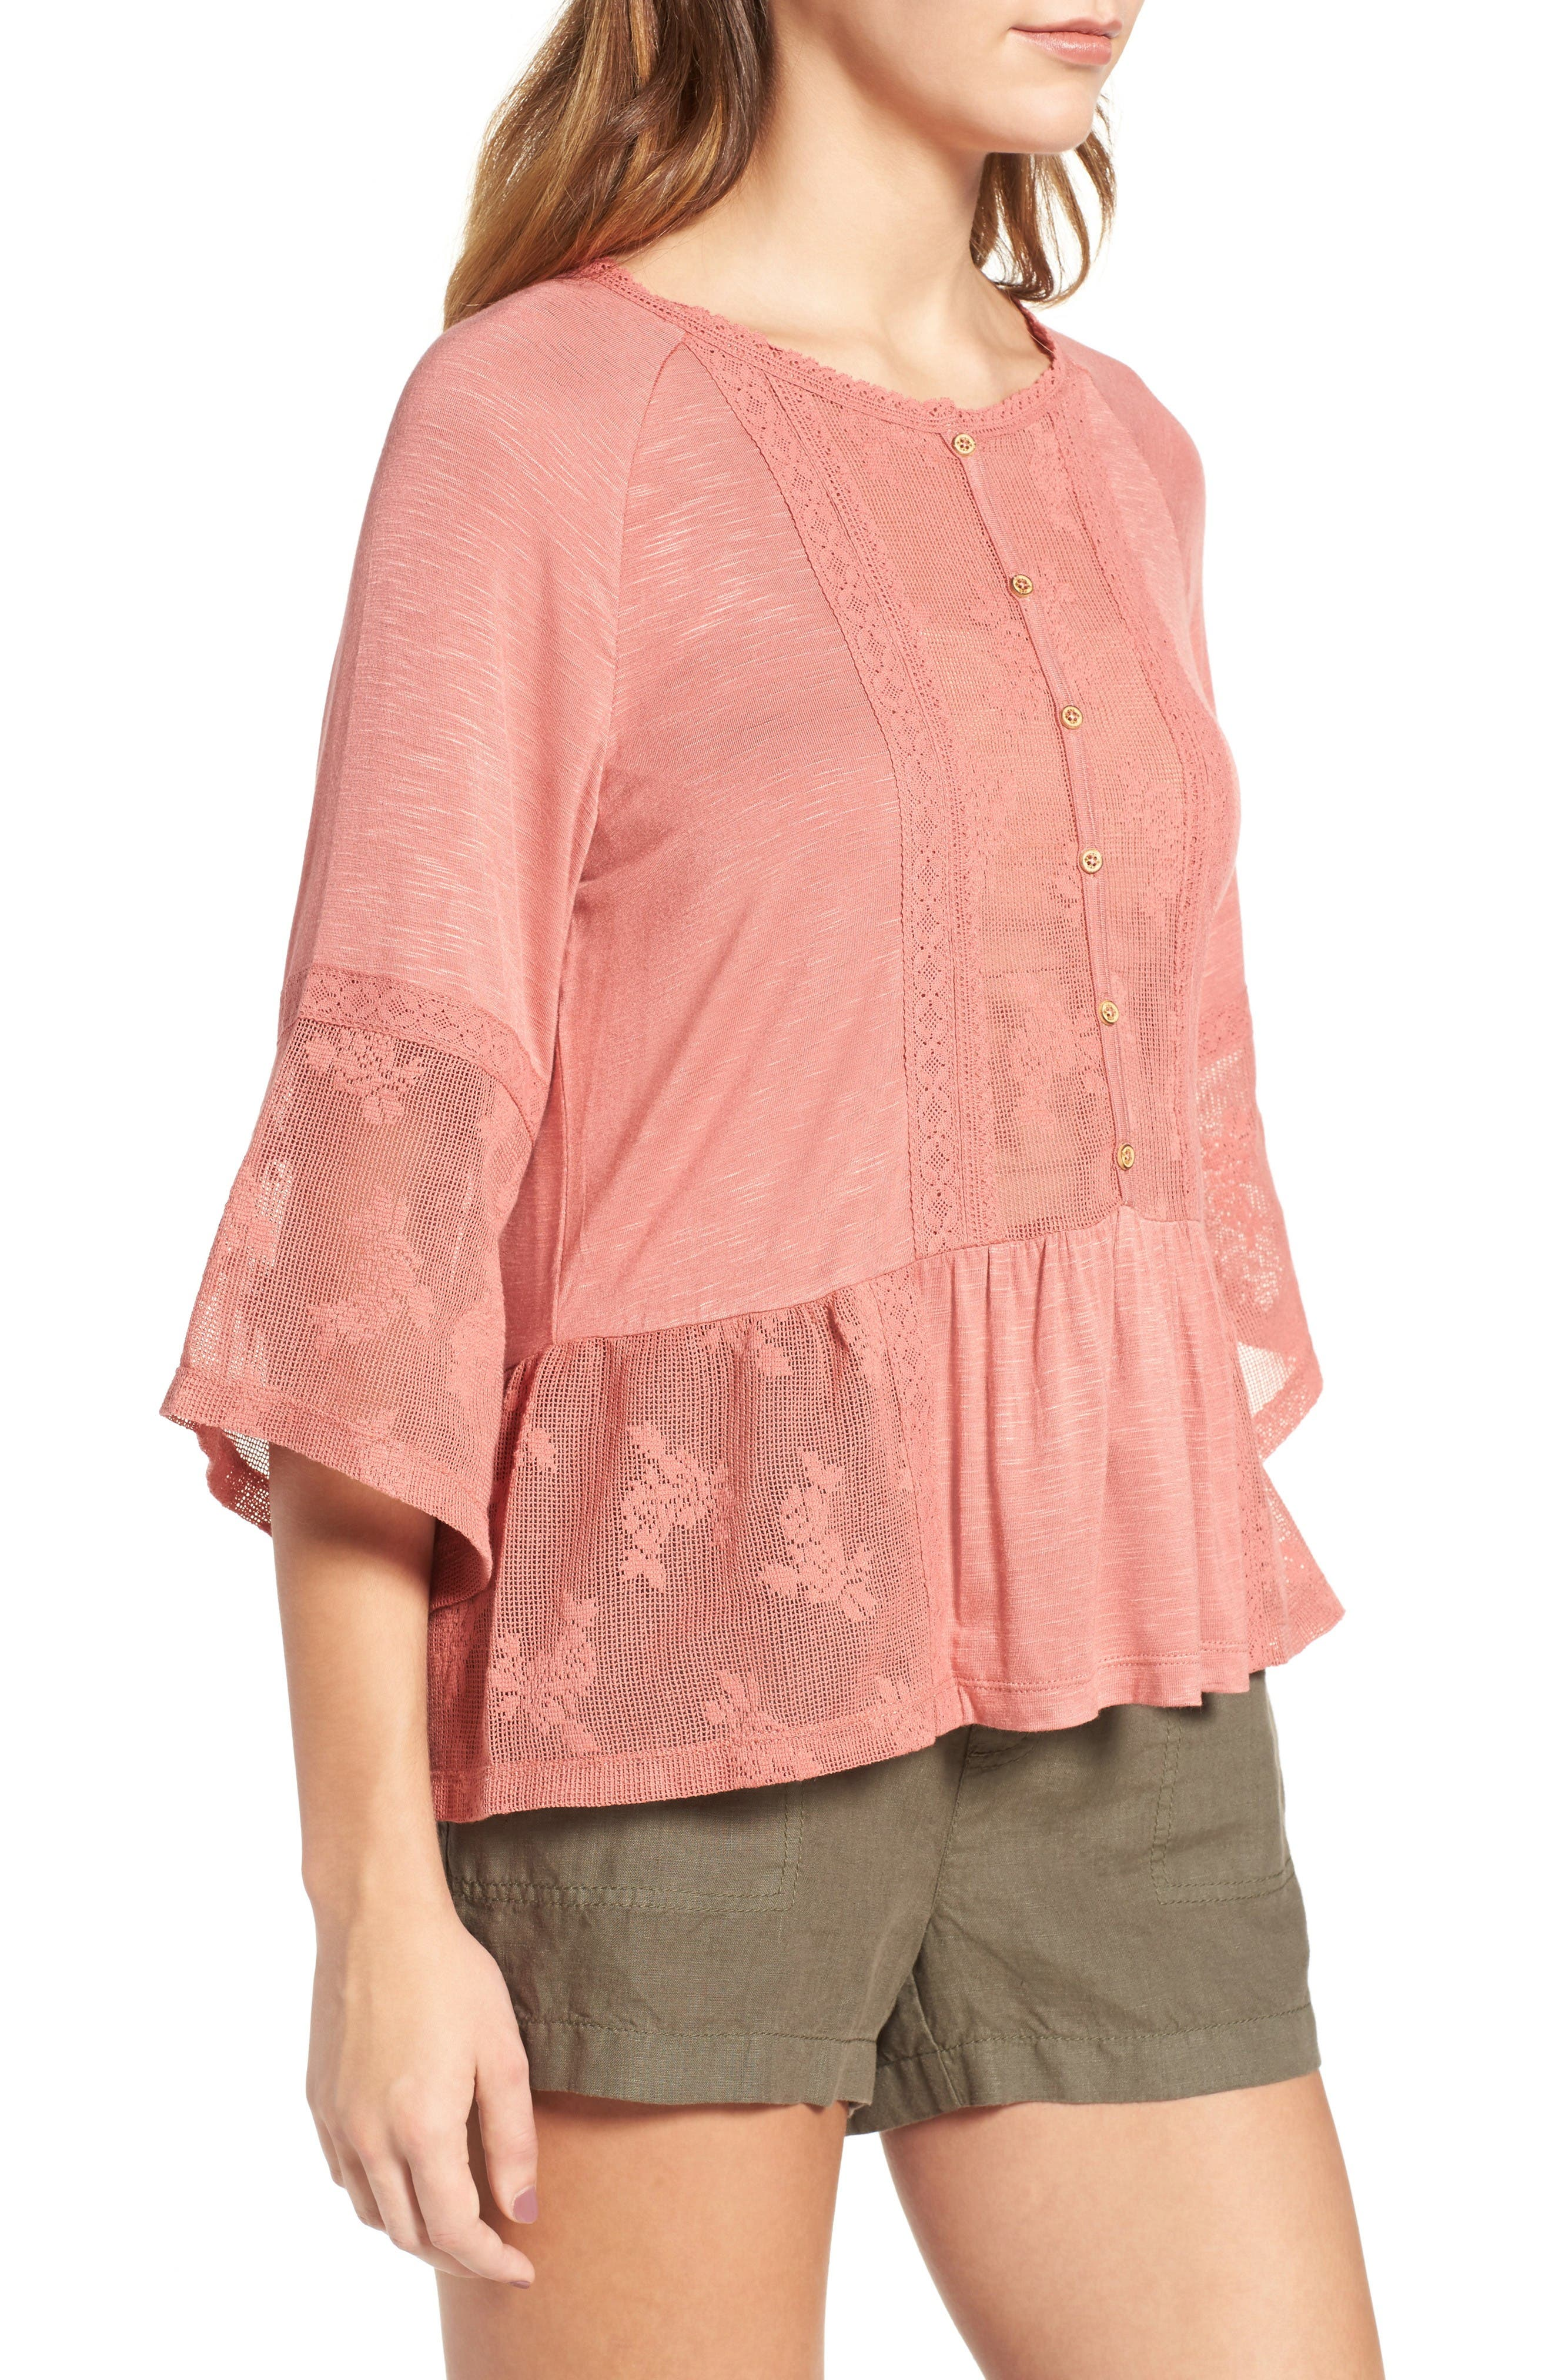 Alternate Image 3  - Wit & Wisdom Mixed Media Flounce Top (Nordstrom Exclusive)